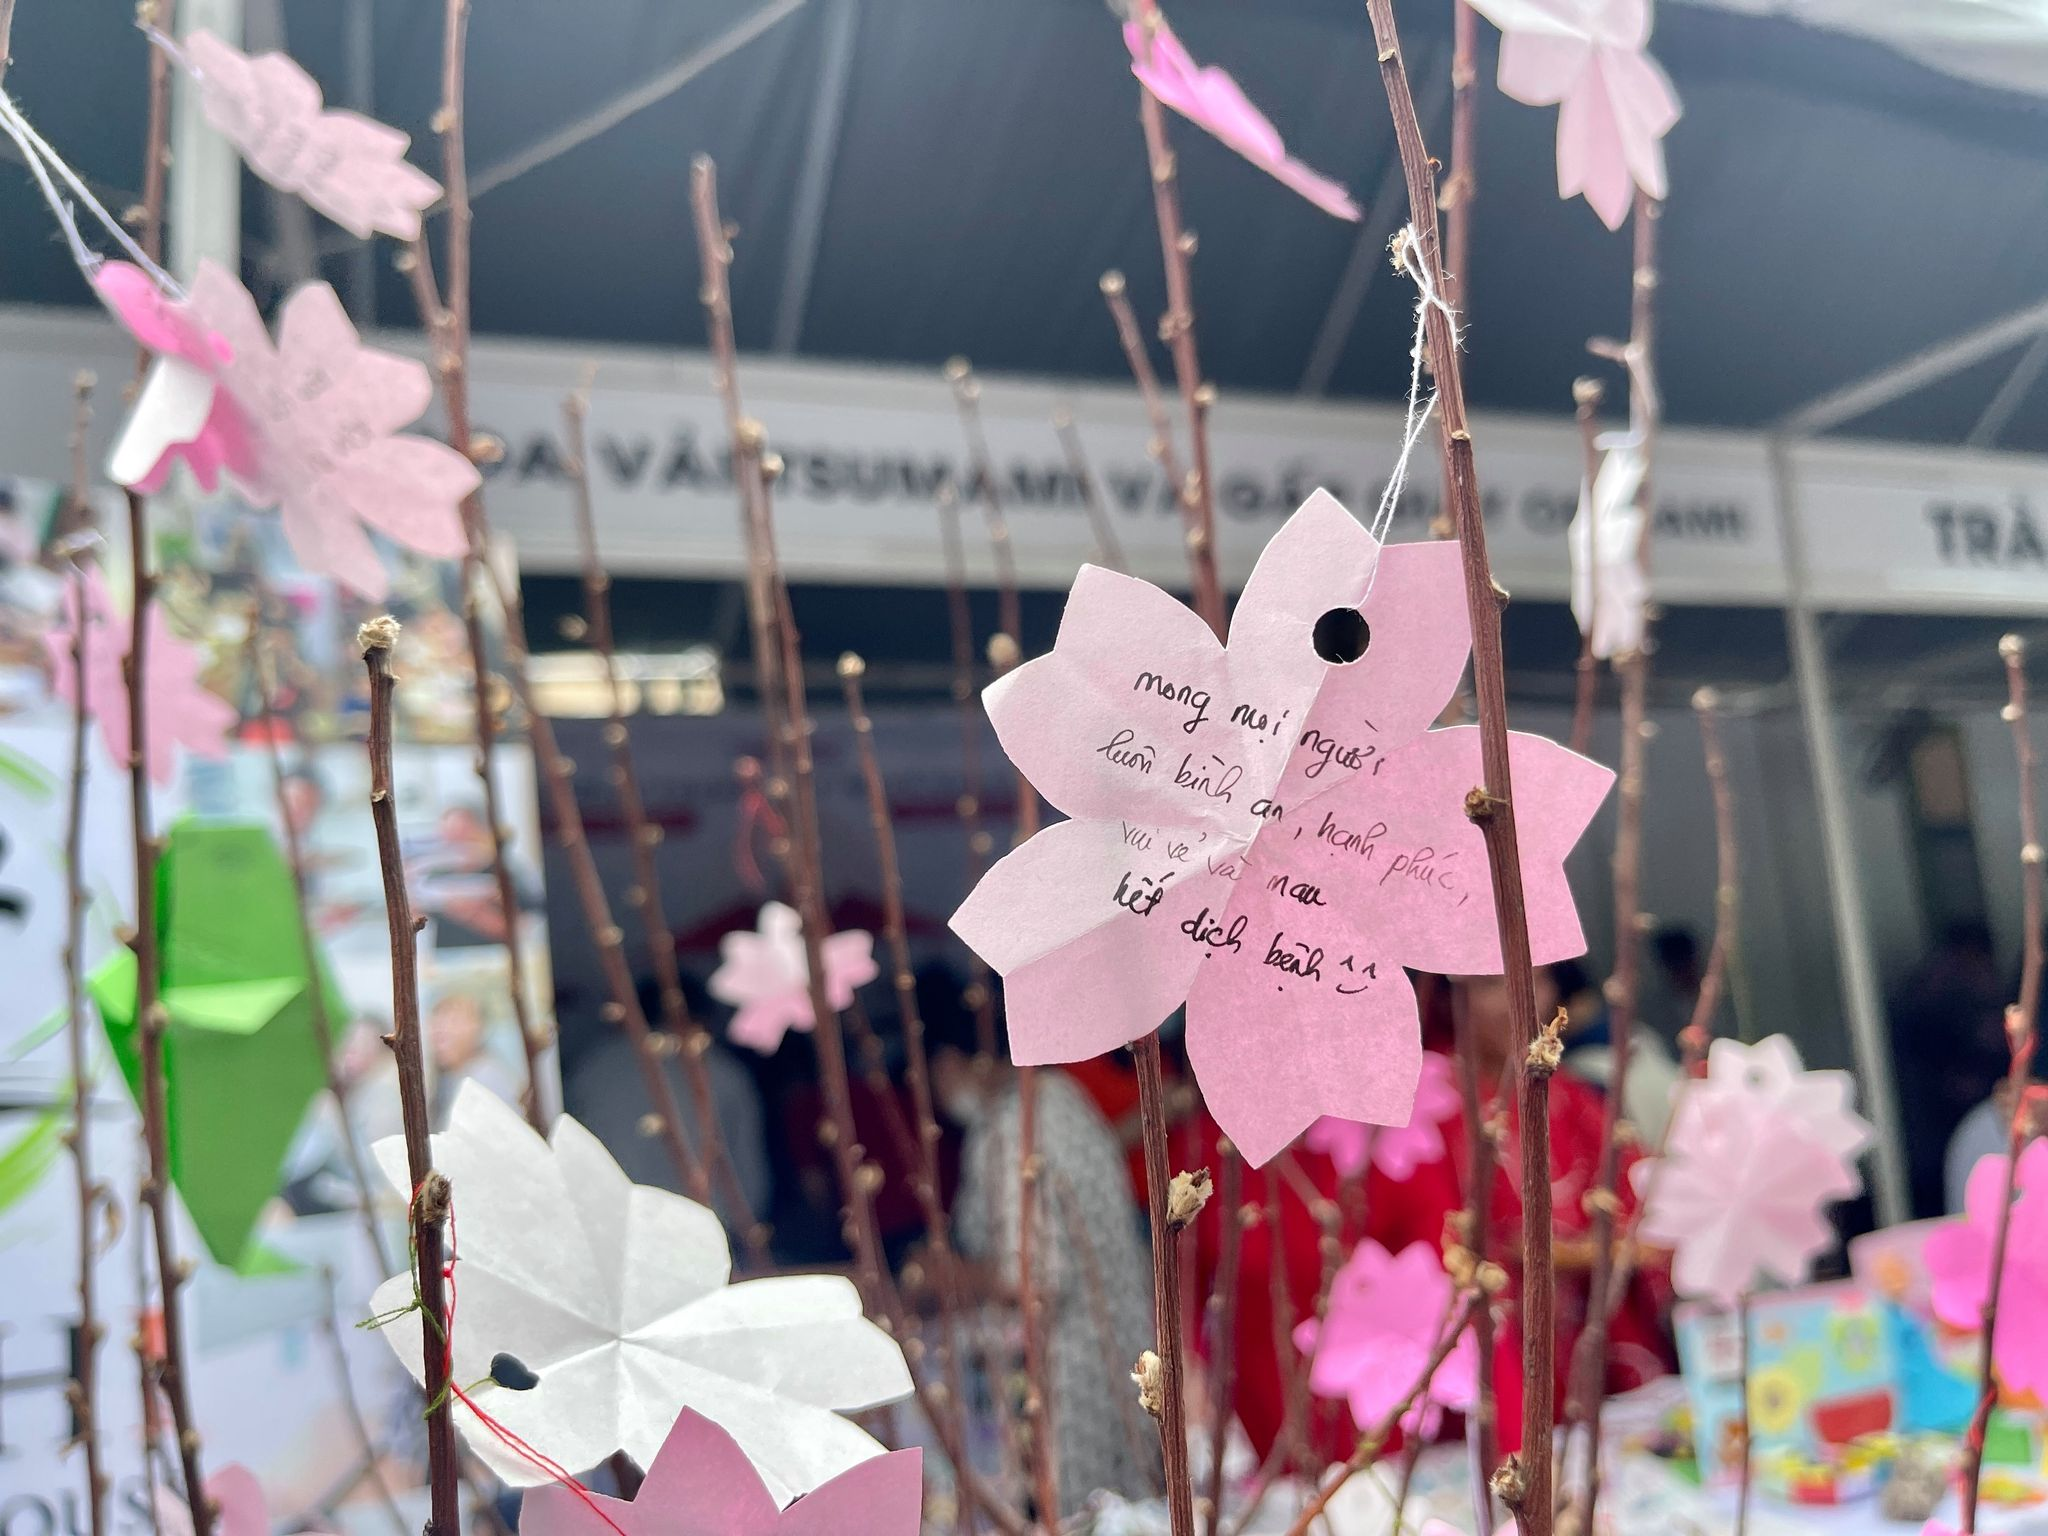 A paper flower displays a wish for 'everyone to be peaceful, happy, joyful and for the COVID-19 epidemic to be over' hung on a wishing tree in front of a booth at the Japan Vietnam Festival in Ho Chi Minh City on April 17, 2021. Photo: Dong Nguyen / Tuoi Tre News